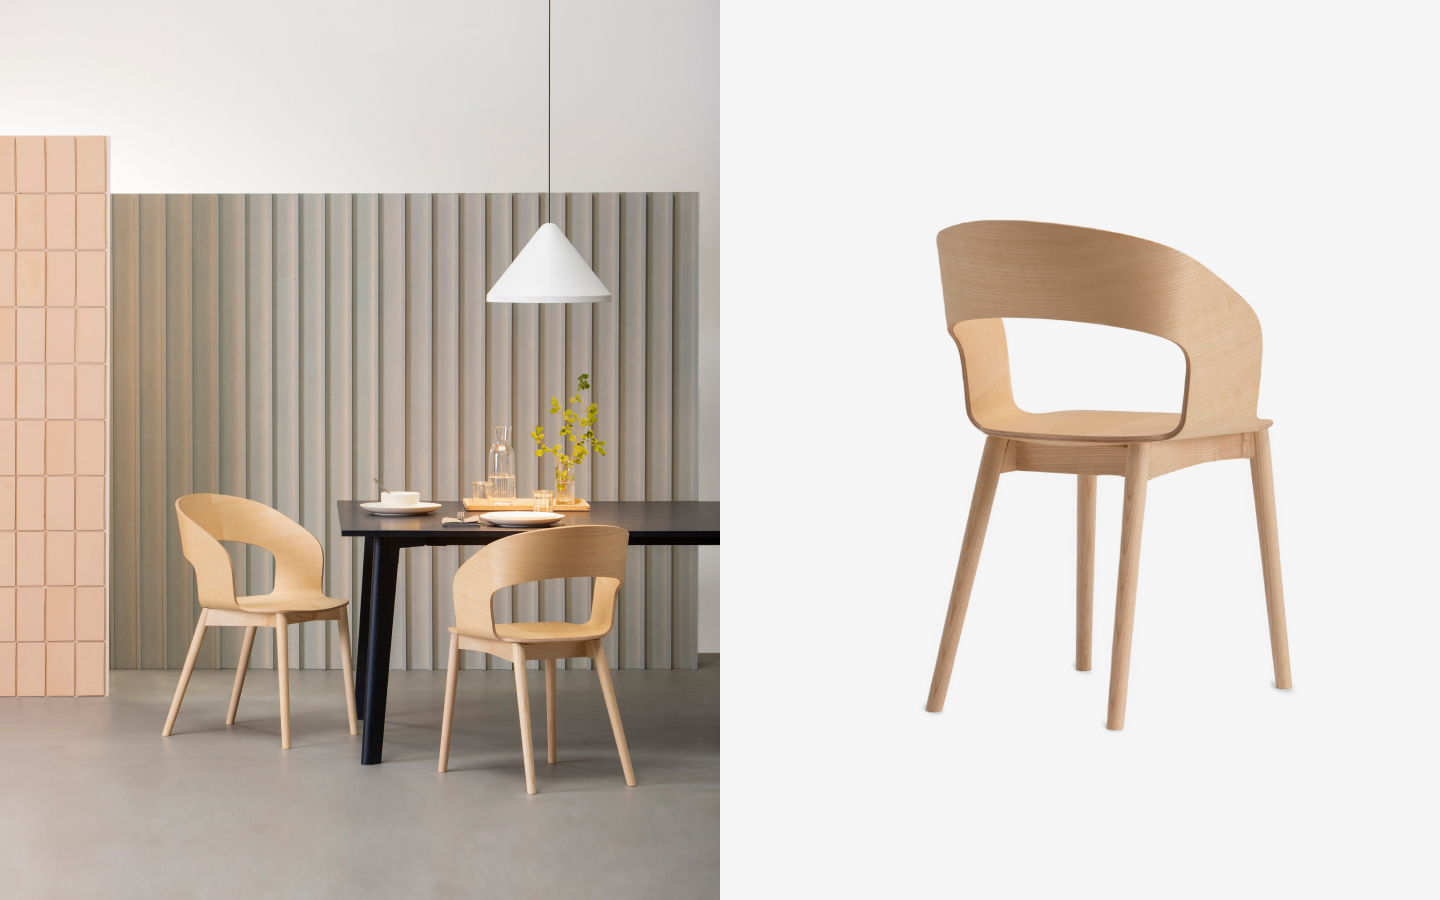 Bent wood chair made from light wood